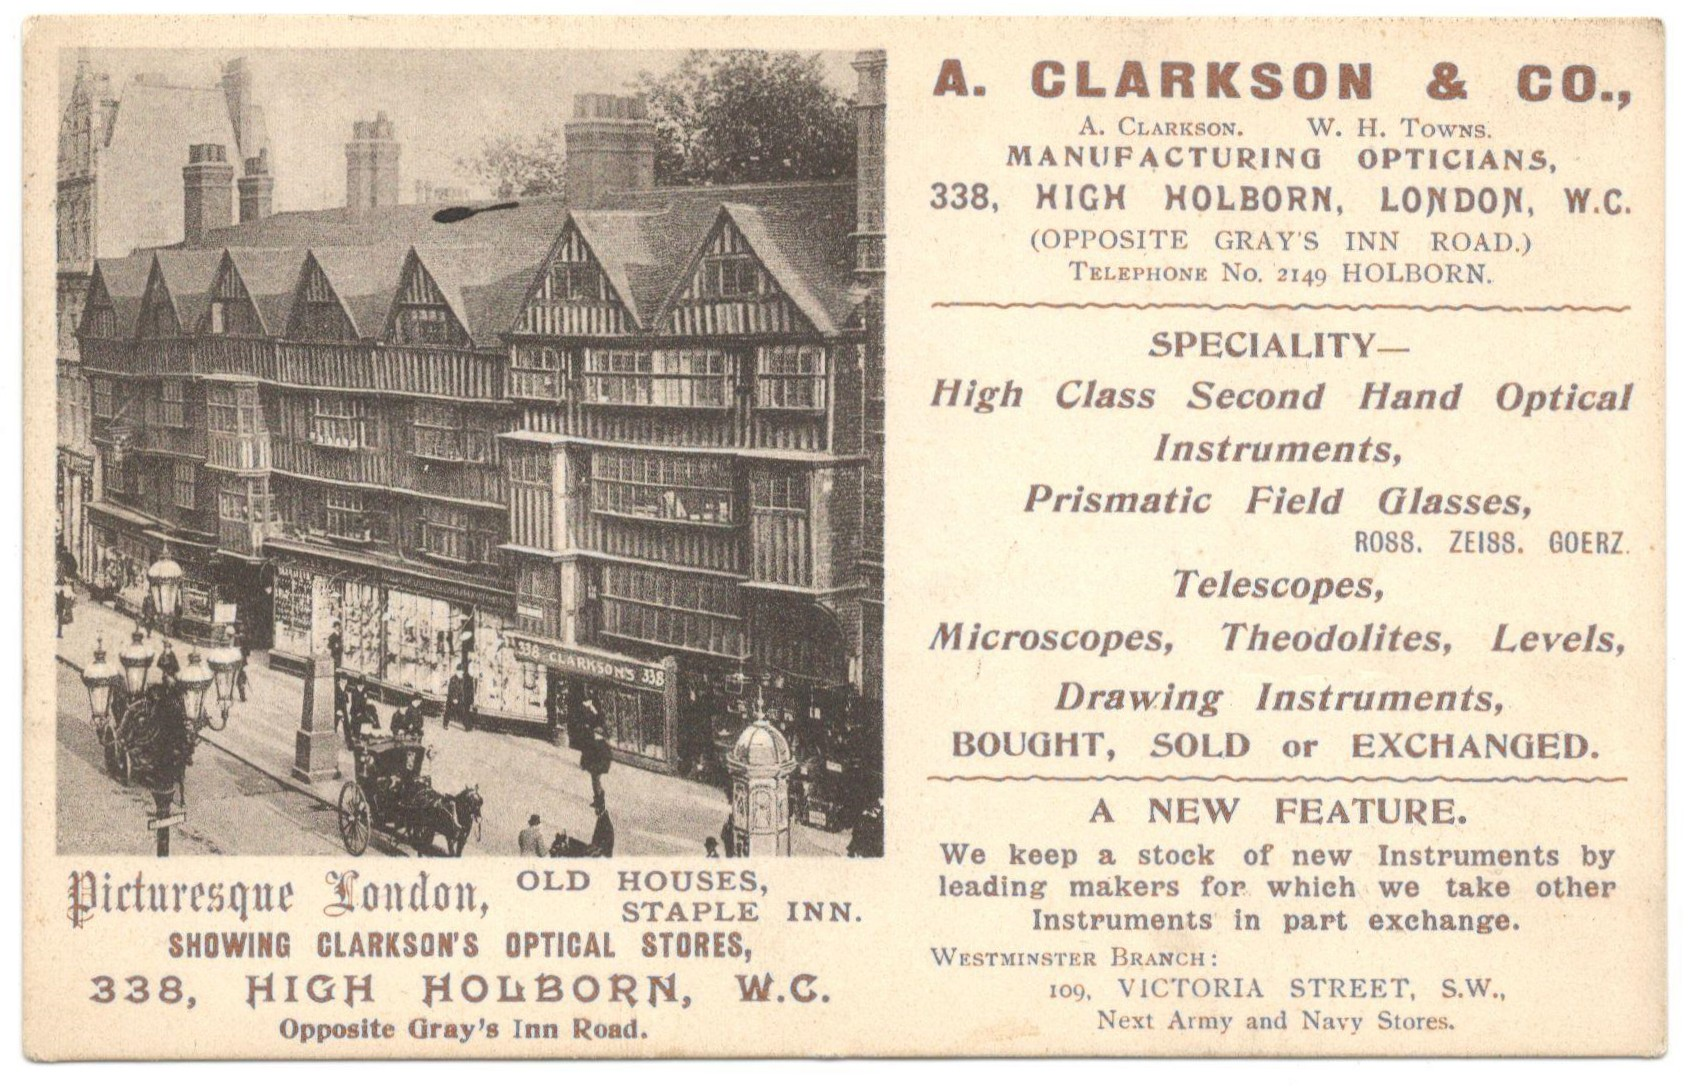 Lot 104 - ADVERTISING PICTURESQUE LONDON POSTCARD FOR A CLARKSON & CO MANUFACTURING OPTICIANS UNPOSTED & IN